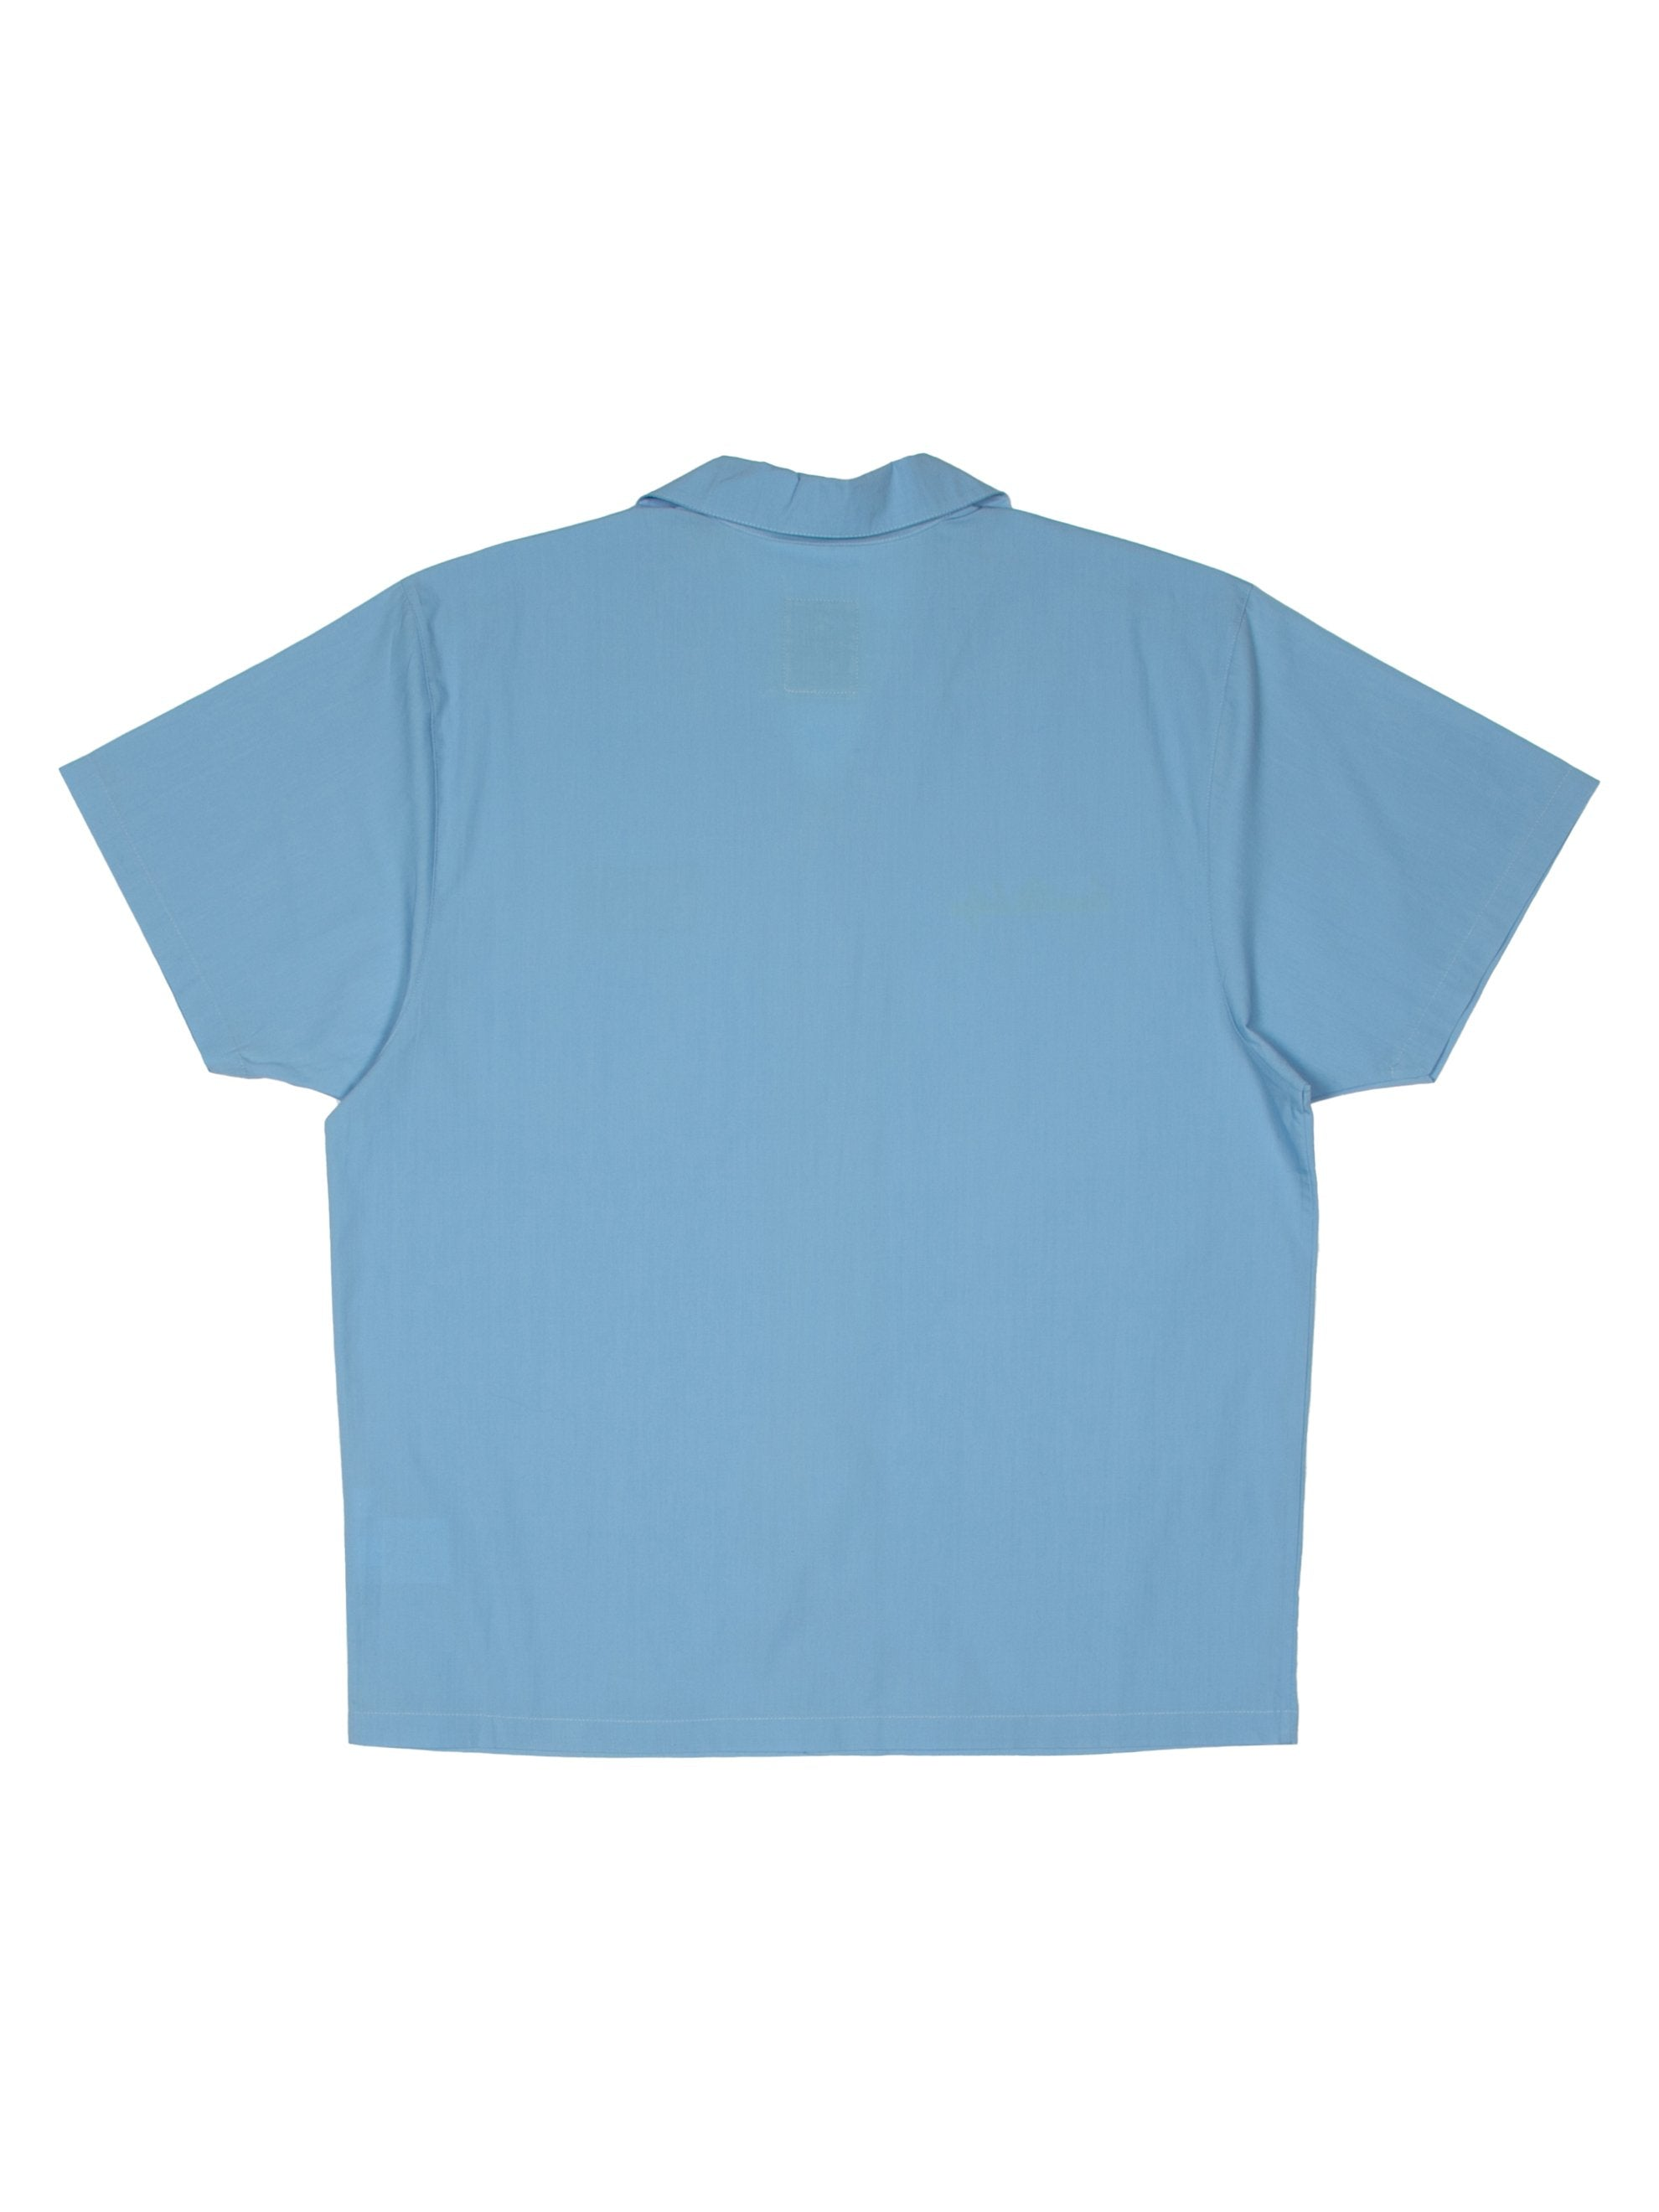 PSYCHIC BLUE Mechanic Shirt 3